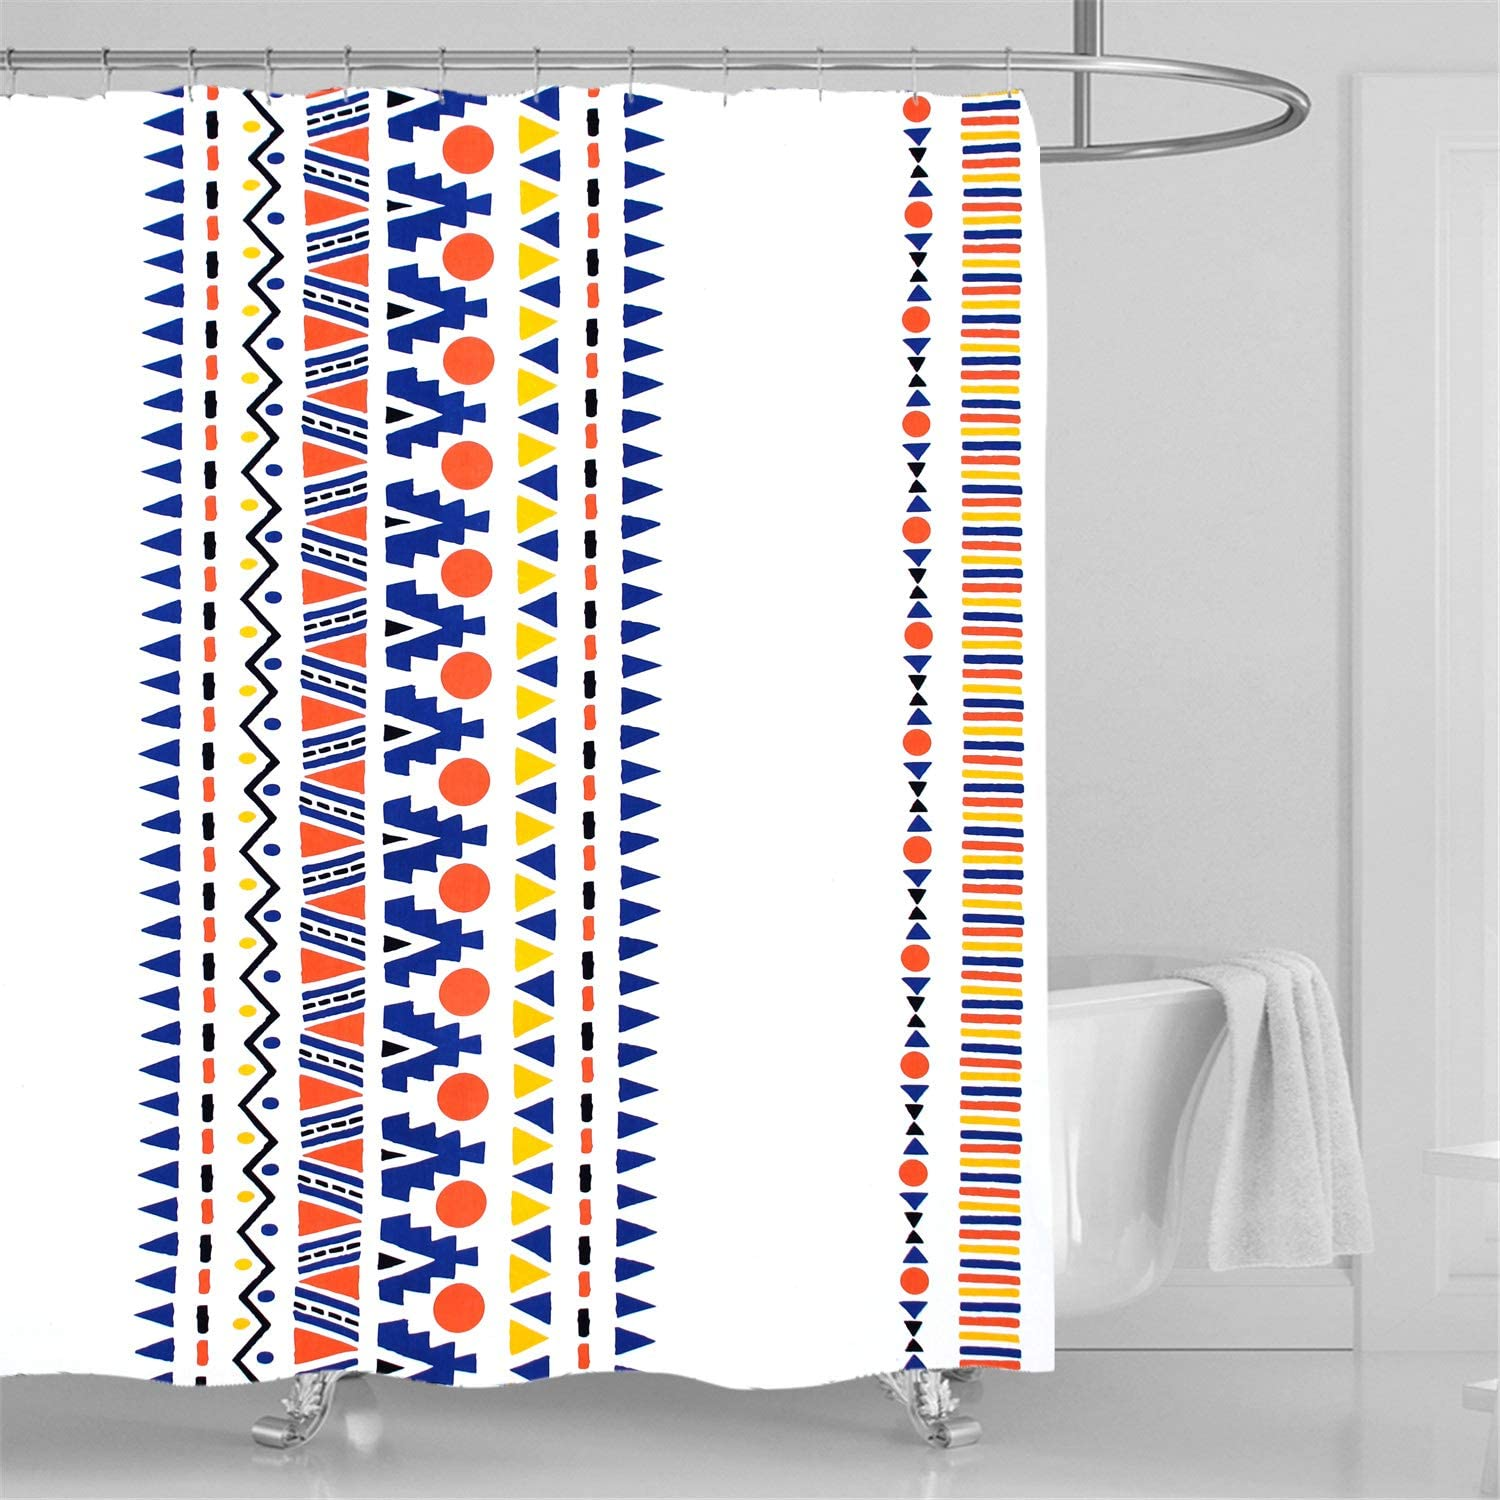 Bohemian Shower Curtain Colorful Triangle Striped Geometric Print Shower Curtain Home Bathroom Waterproof Decor with 12 Shower Hooks 72 x 72 inches